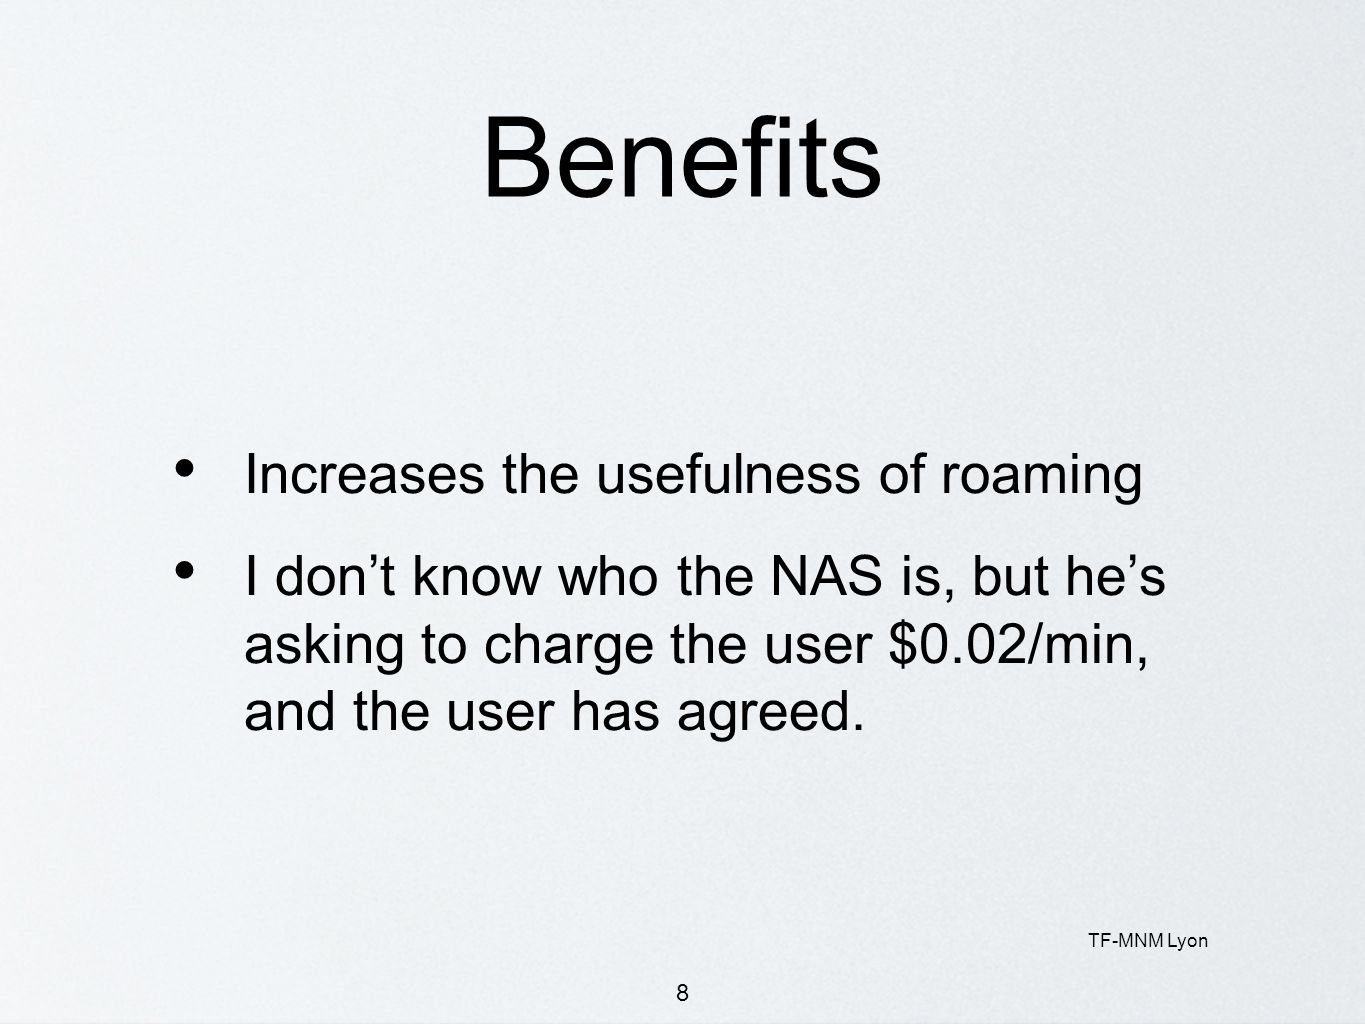 TF-MNM Lyon 8 Benefits Increases the usefulness of roaming I dont know who the NAS is, but hes asking to charge the user $0.02/min, and the user has a